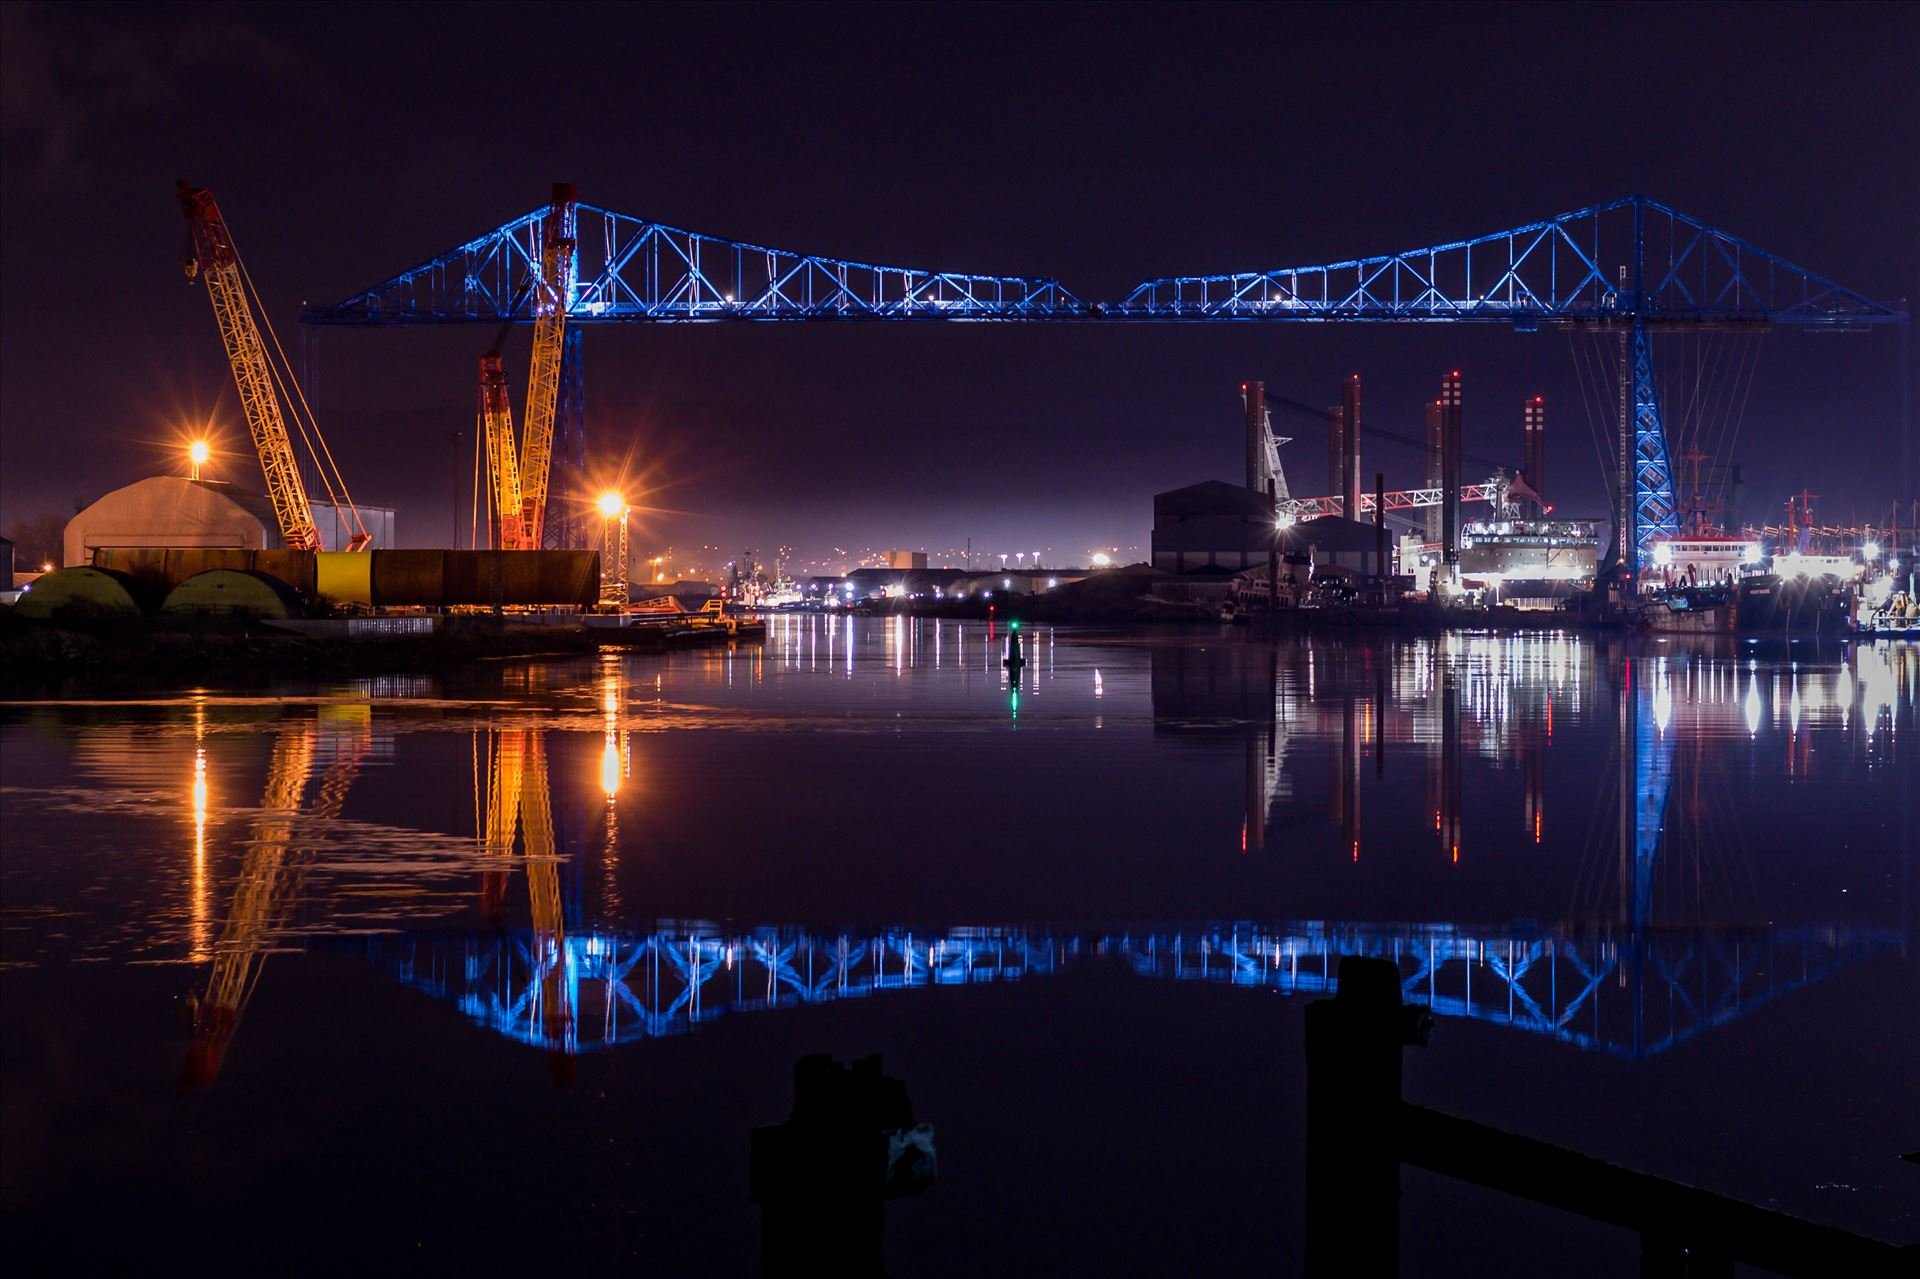 Transporter Bridge Reflections - The Transporter Bridge Reflection. by AJ Stoves Photography